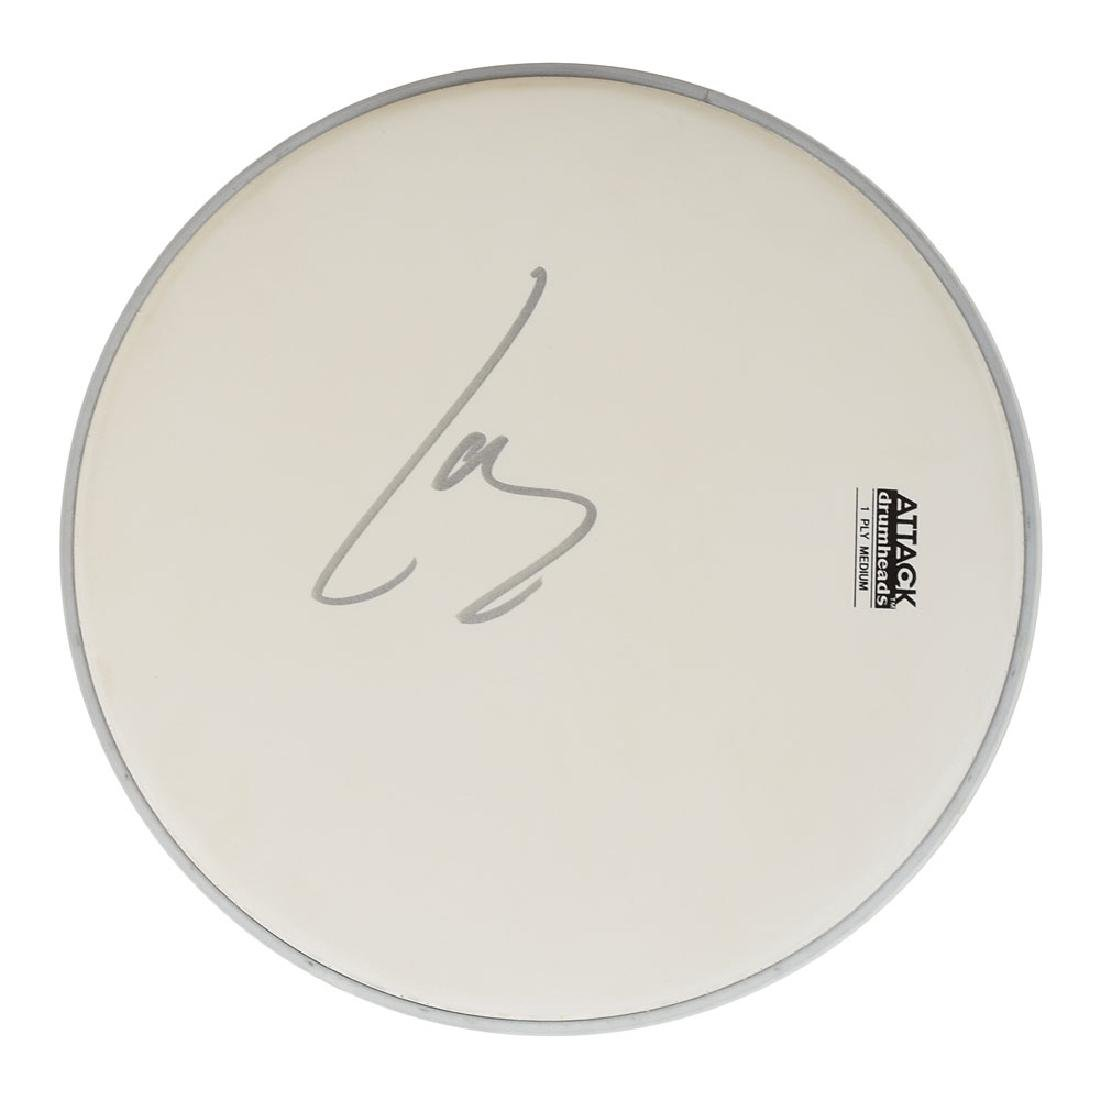 Metallica: Lars Ulrich Signed Drum Head